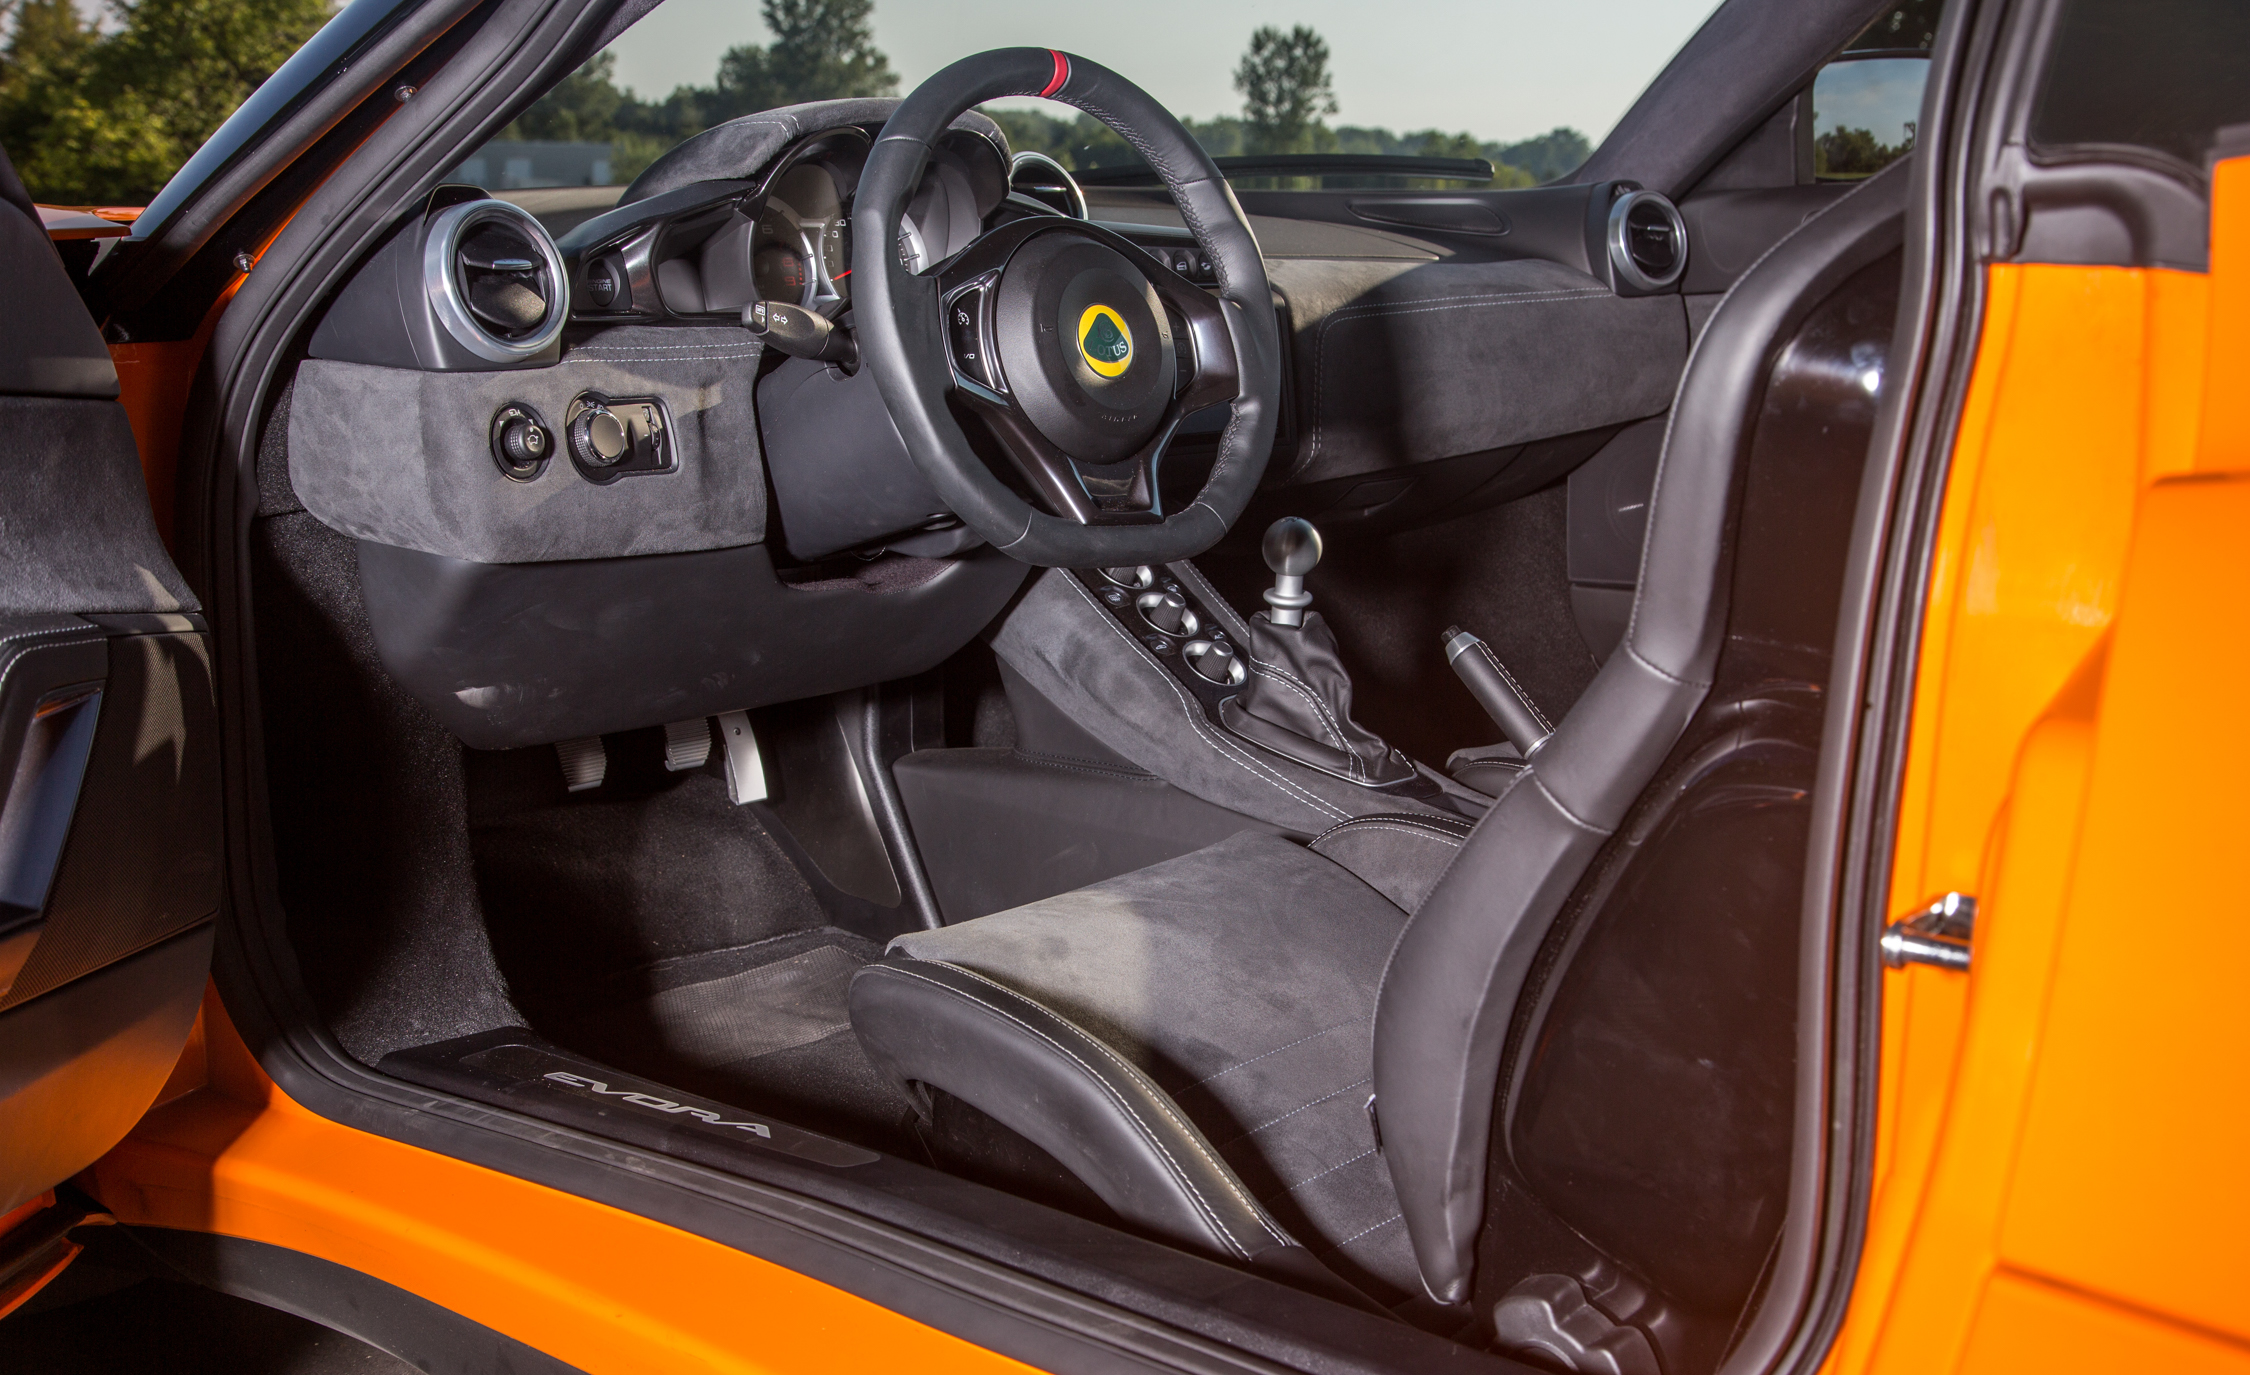 2017 Lotus Evora 400 Interior Cockpit (View 3 of 12)